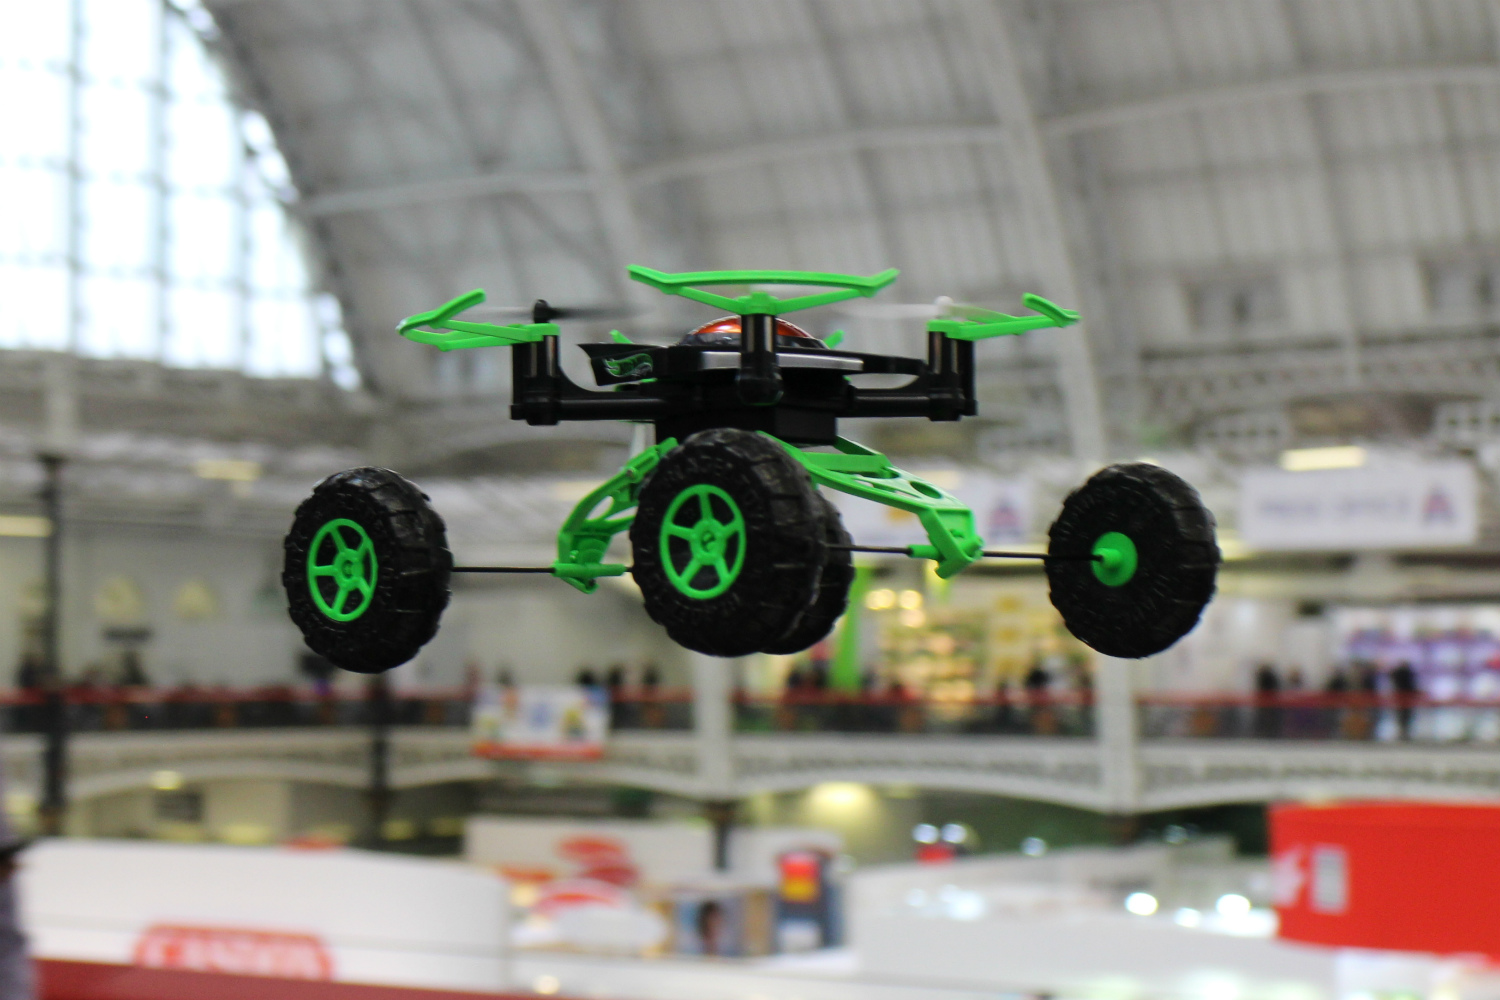 2018 Popular Toys : The best tech toys from annual london toy fair